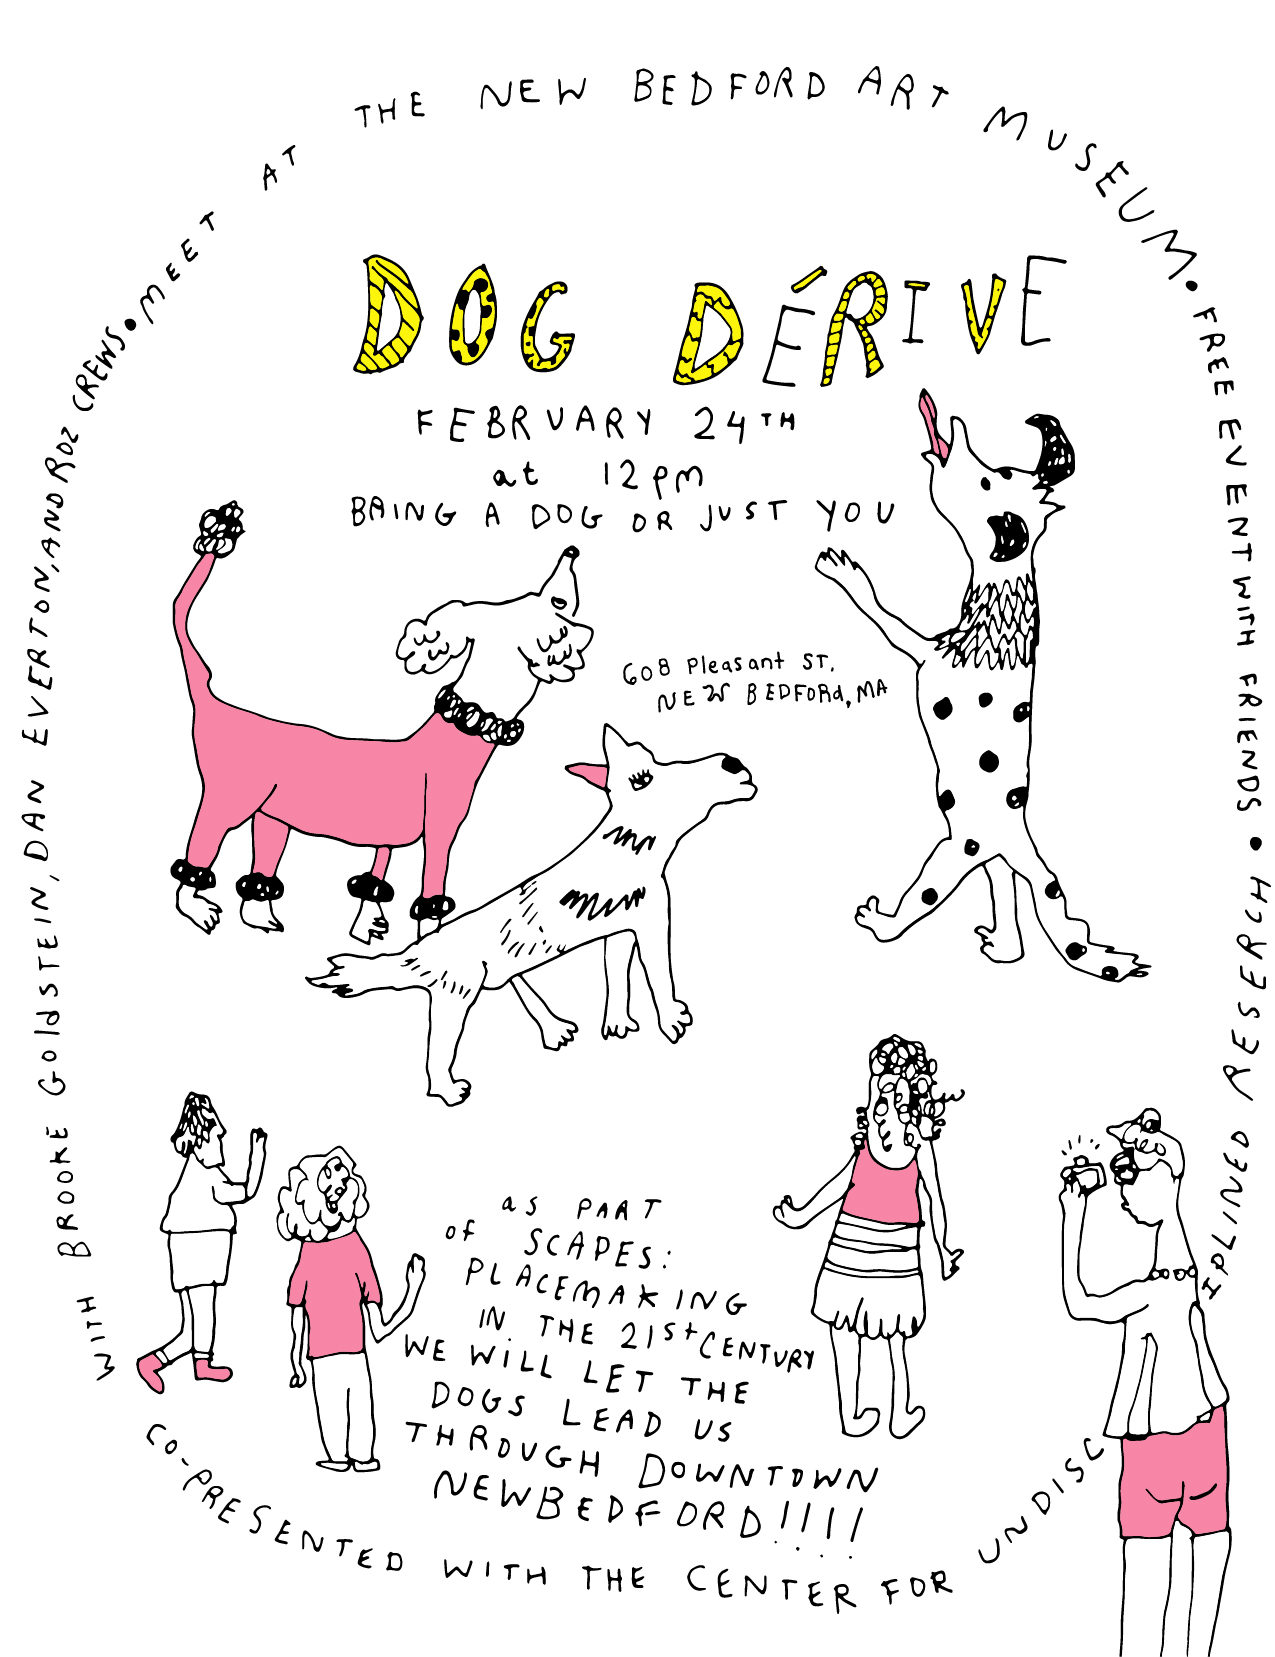 On February 24th, we're hosting a Dog Derive with the New Bedford Art Museum. Dogs will be leading us around New Bedford!